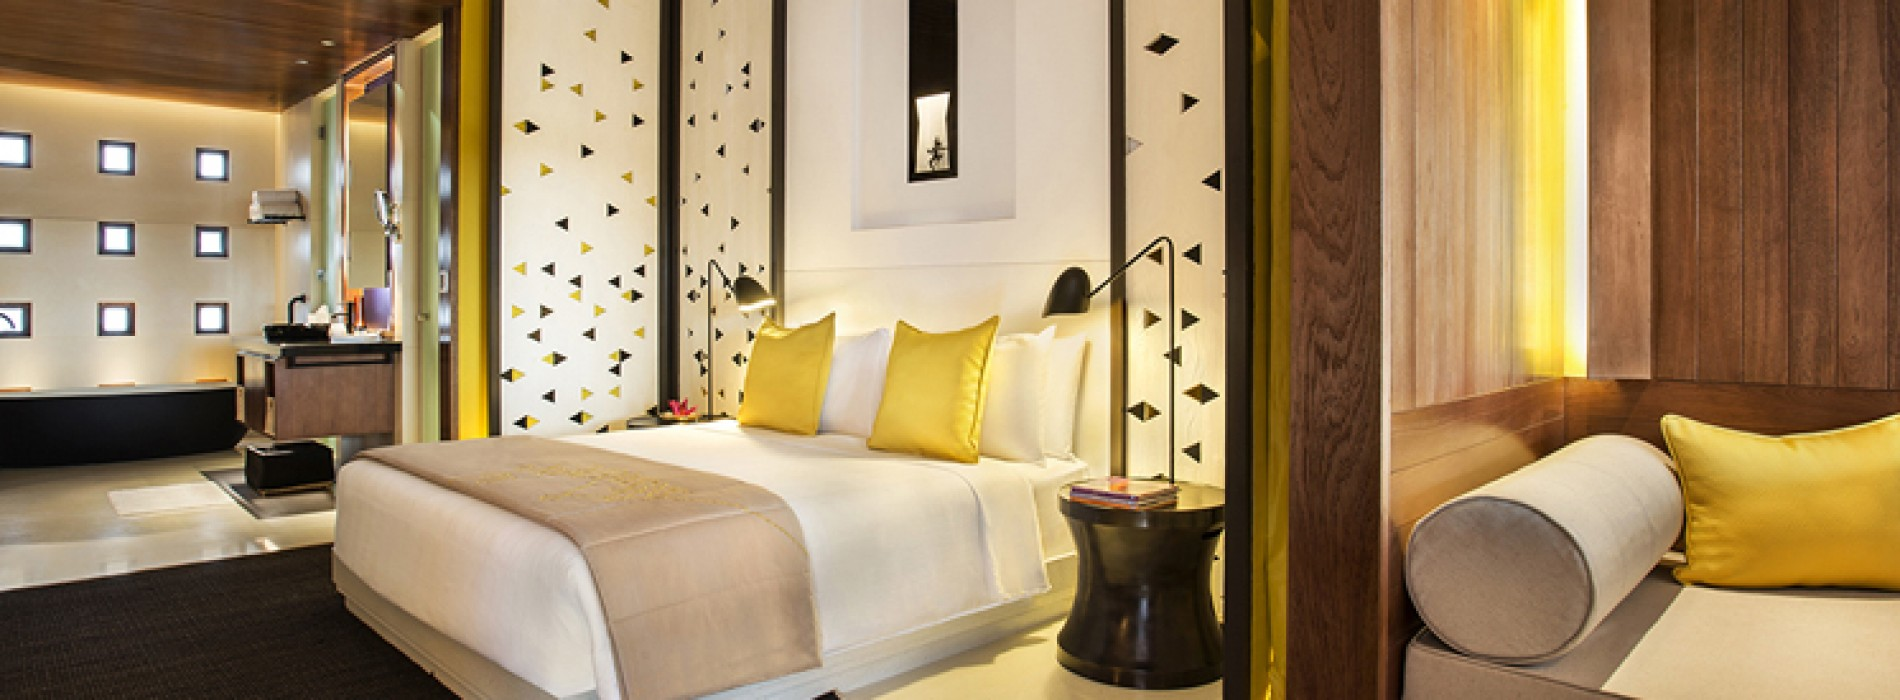 First InterContinental in India opens in Chennai